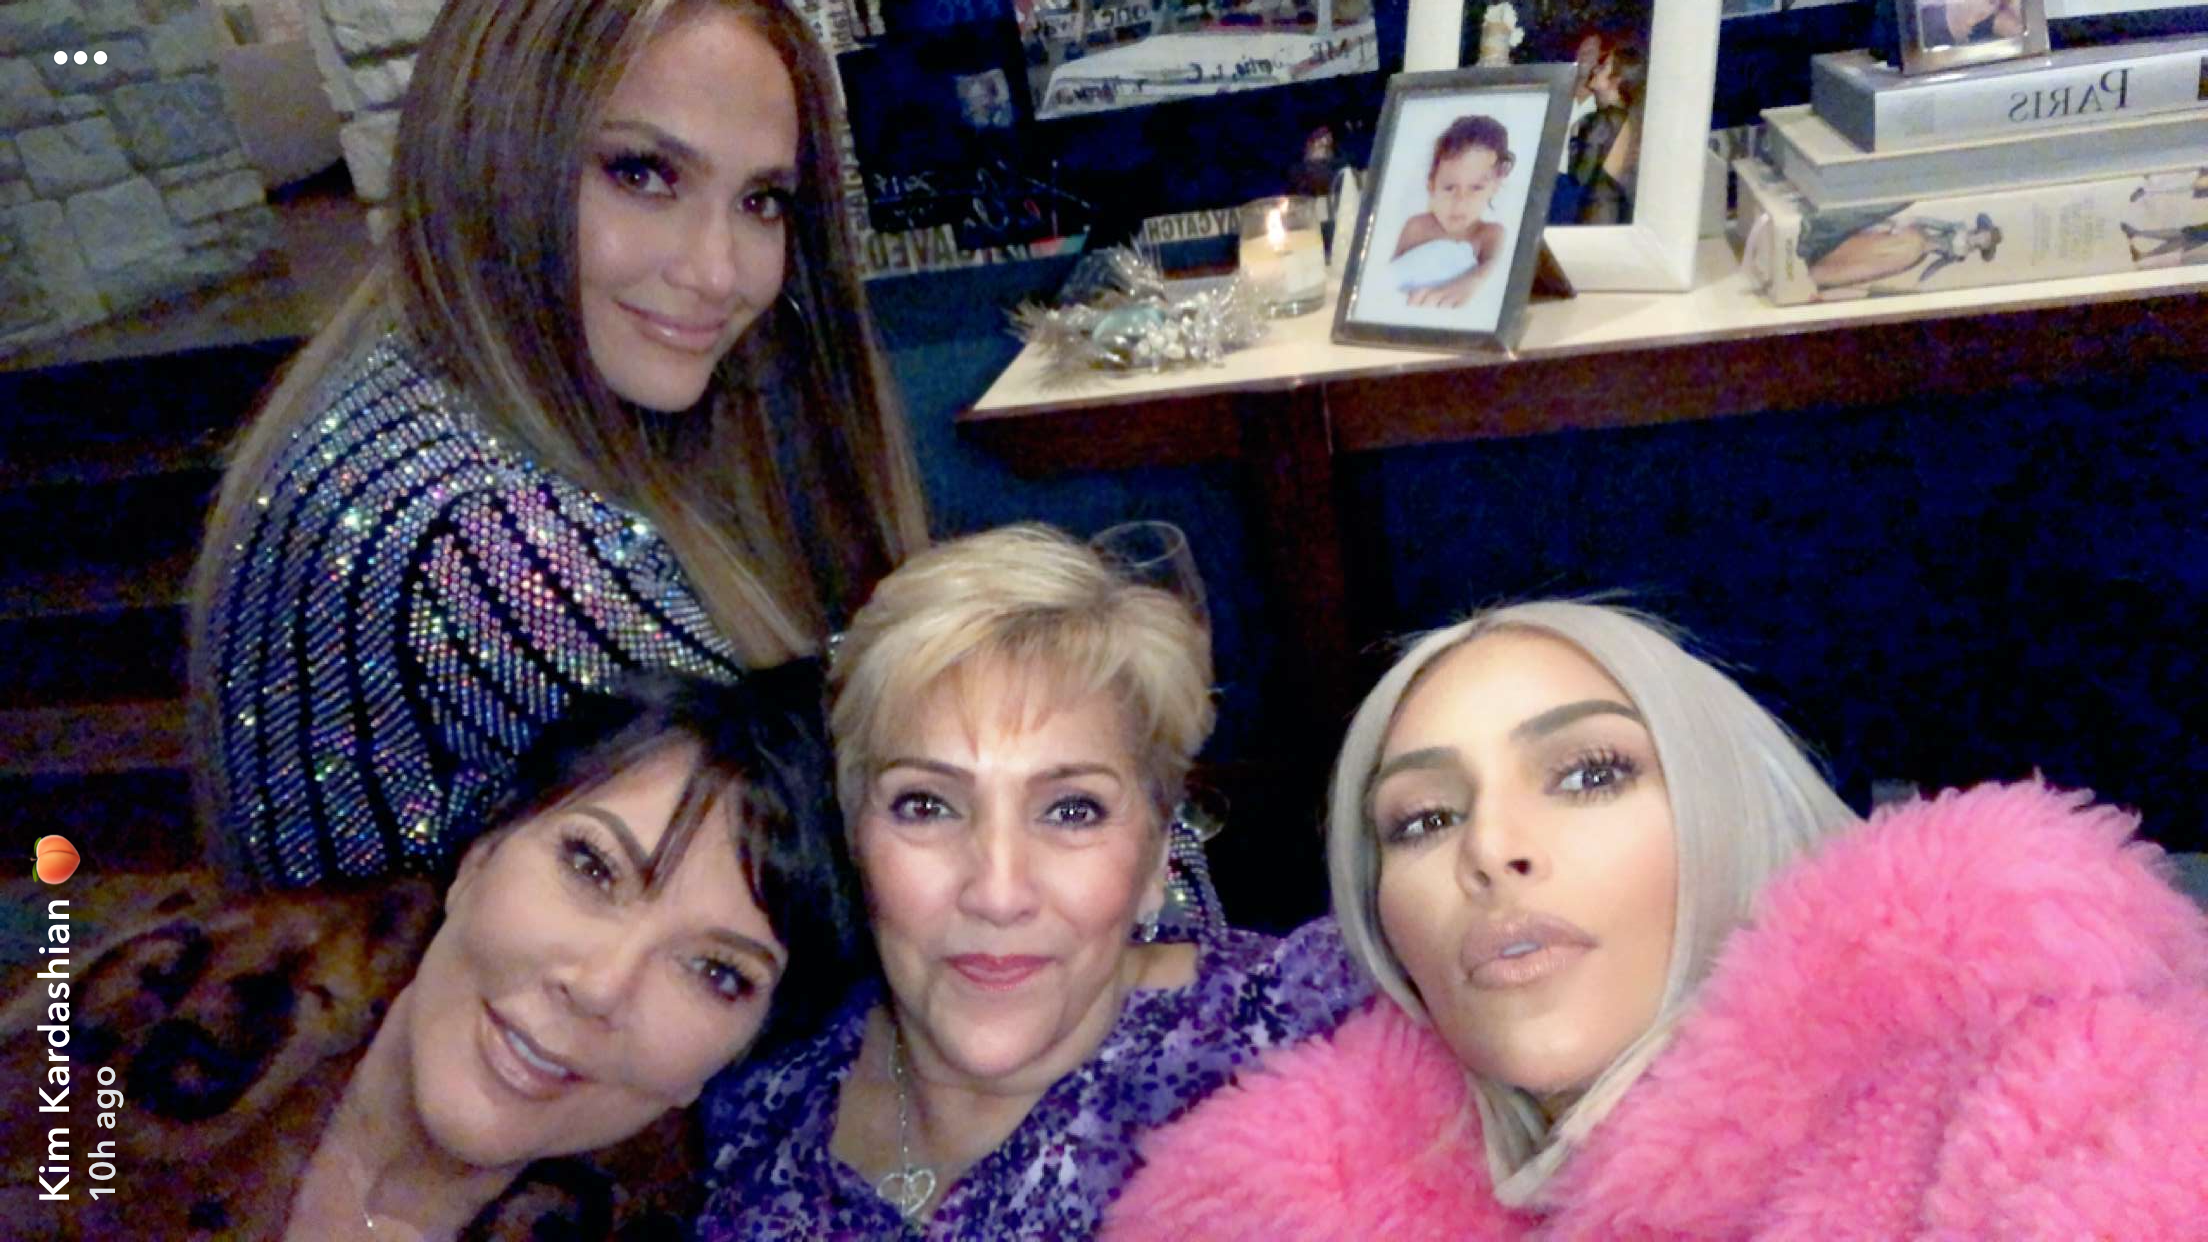 Kim Kardashian West shared this mom daughter selfie with her mom Kris Jenner, Jennifer Lopez and her mom Guadalupe Rodriguez on Snapchat on Dec. 27, 2017.